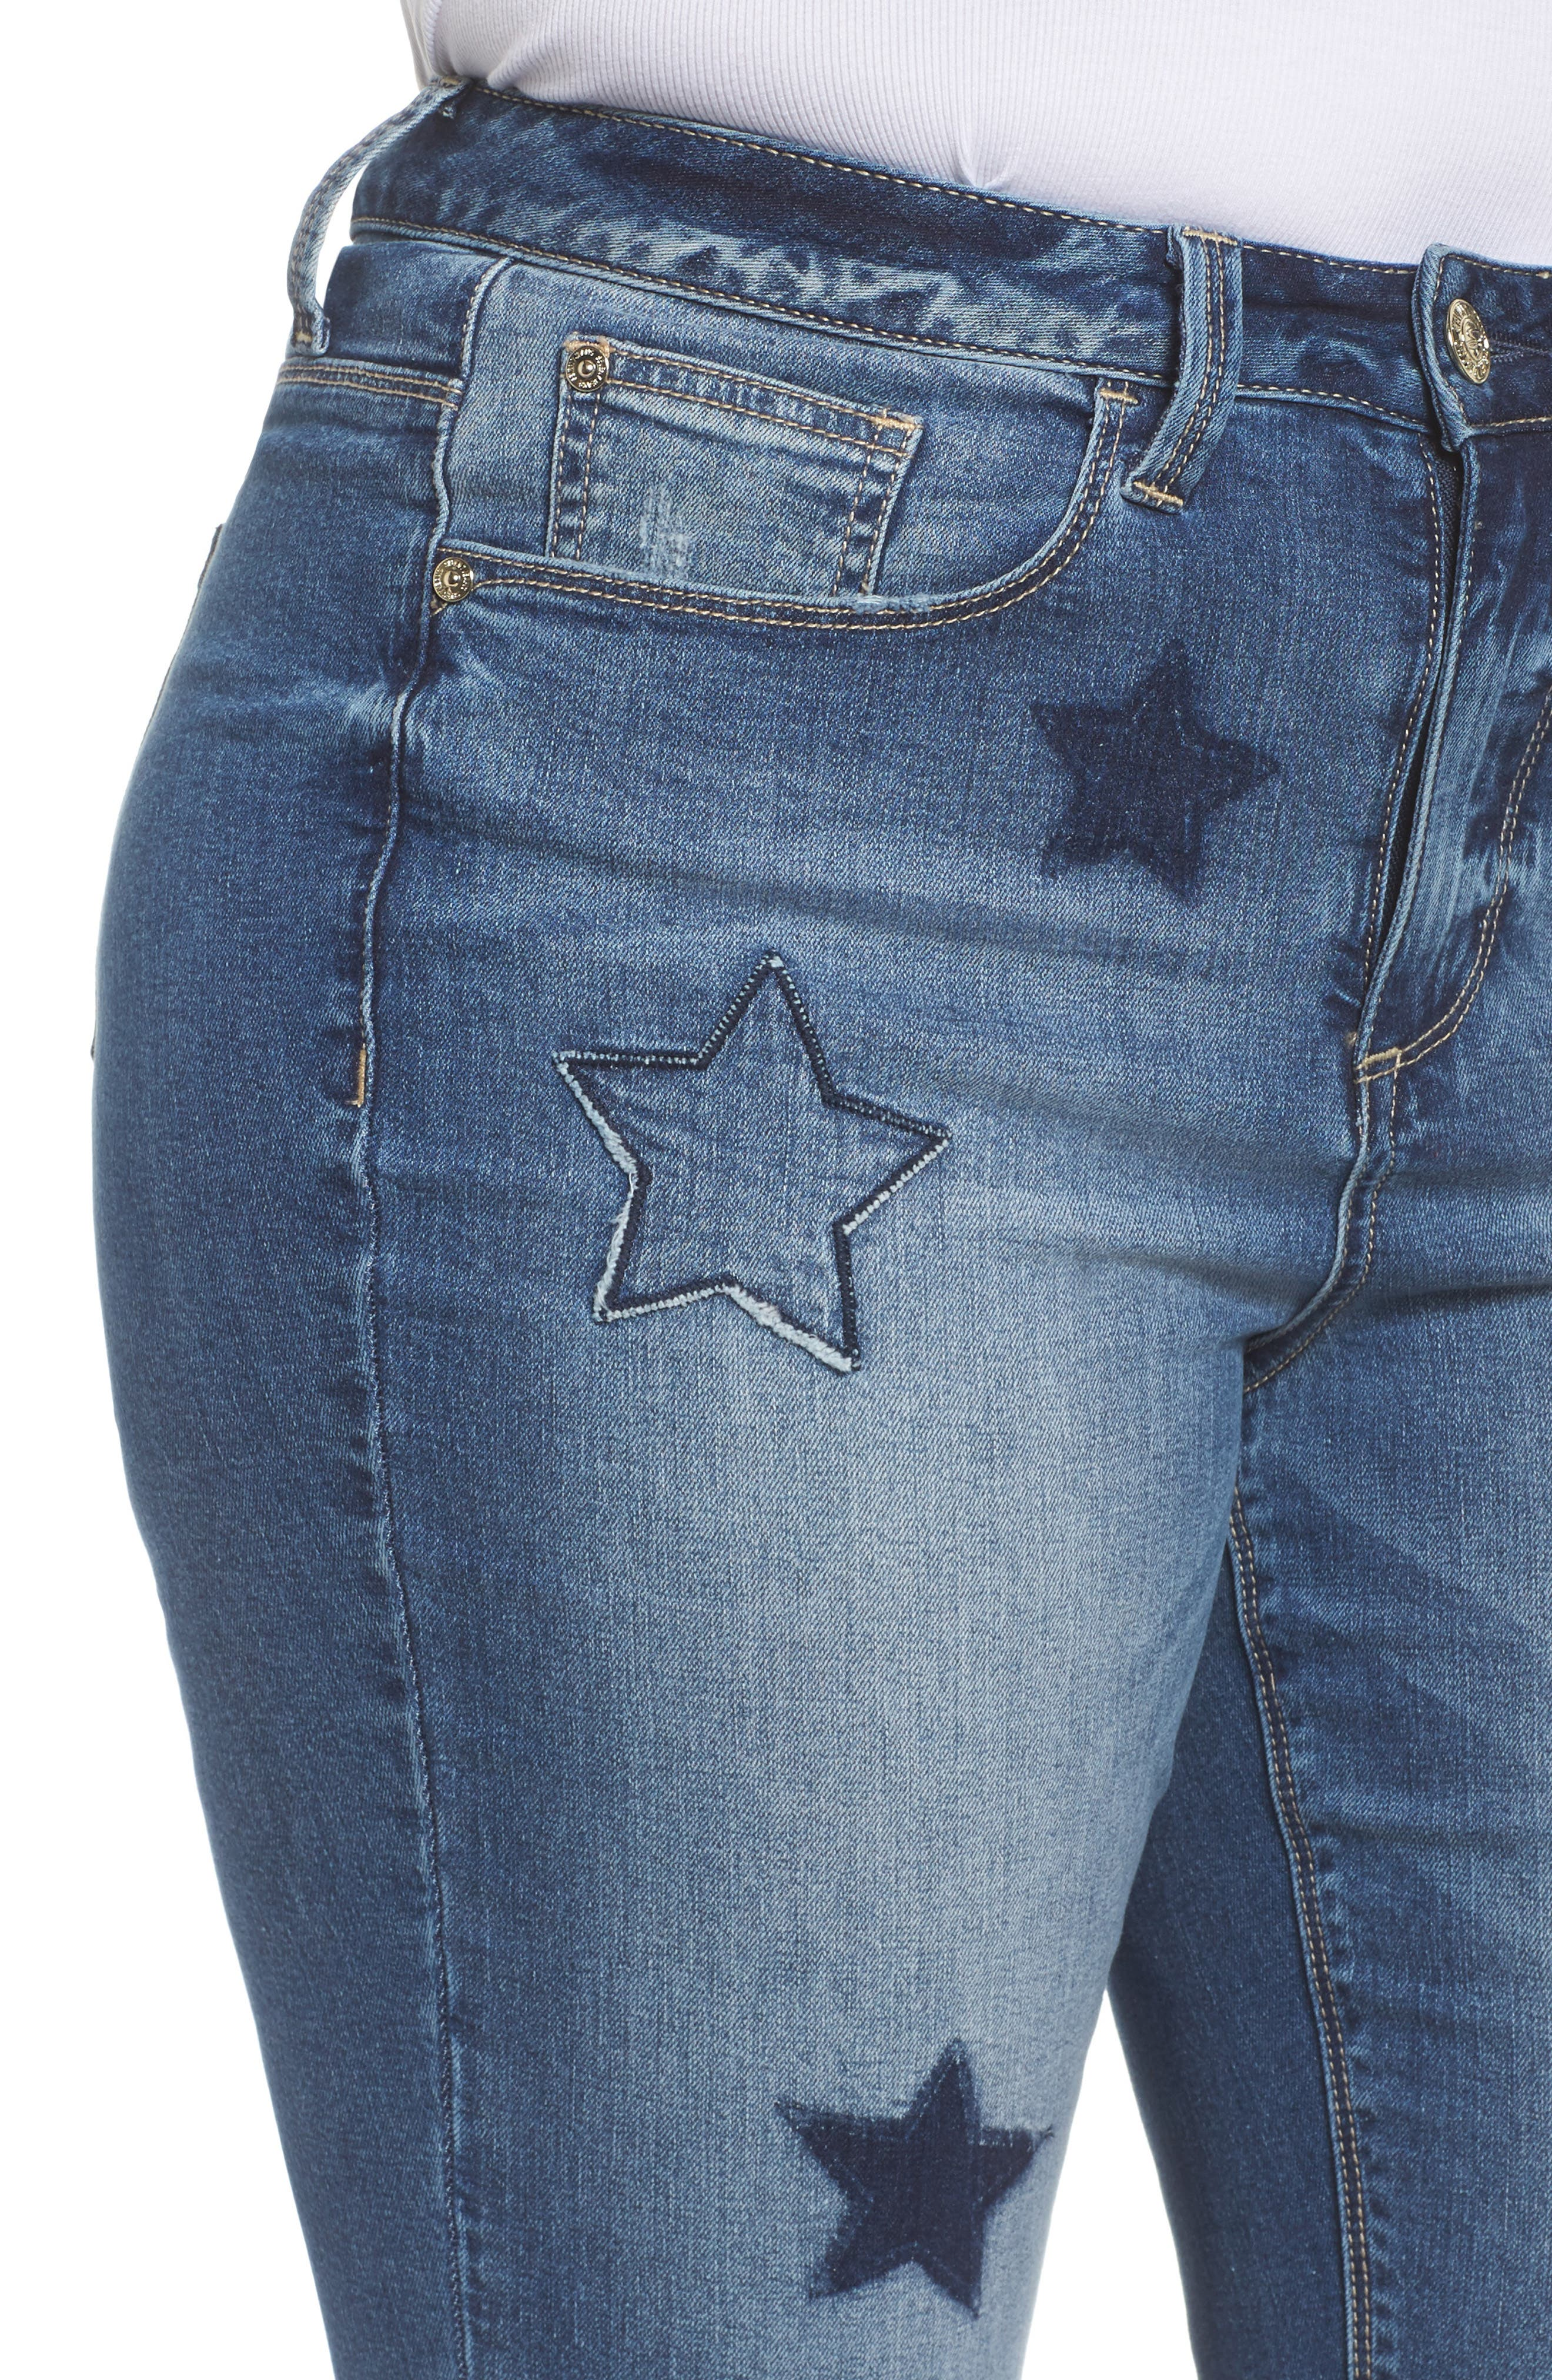 Star Patched Straight Leg Crop Jeans,                             Alternate thumbnail 4, color,                             437